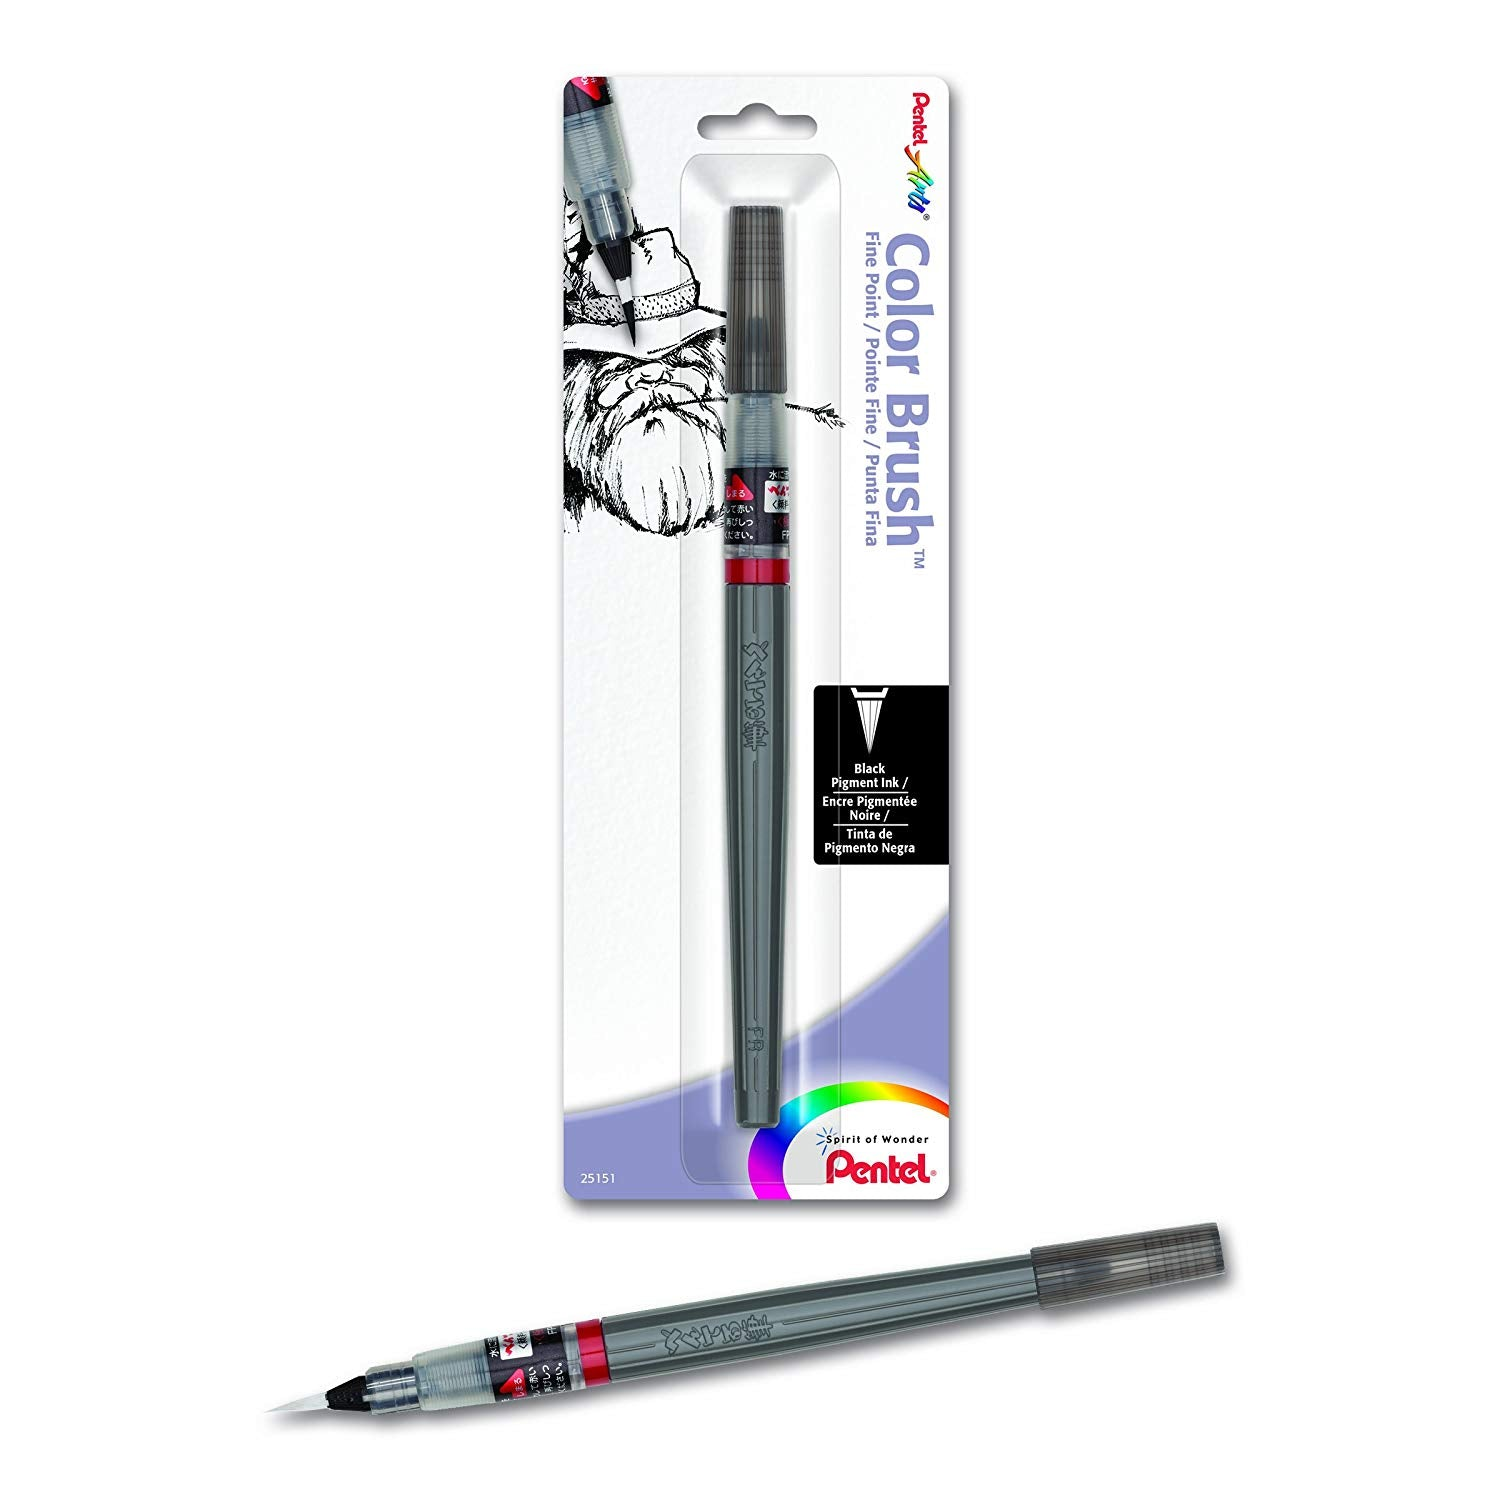 Pentel FP5FBPA, FP5MBPA Arts Color Brush with Pigment Ink, Black Ink